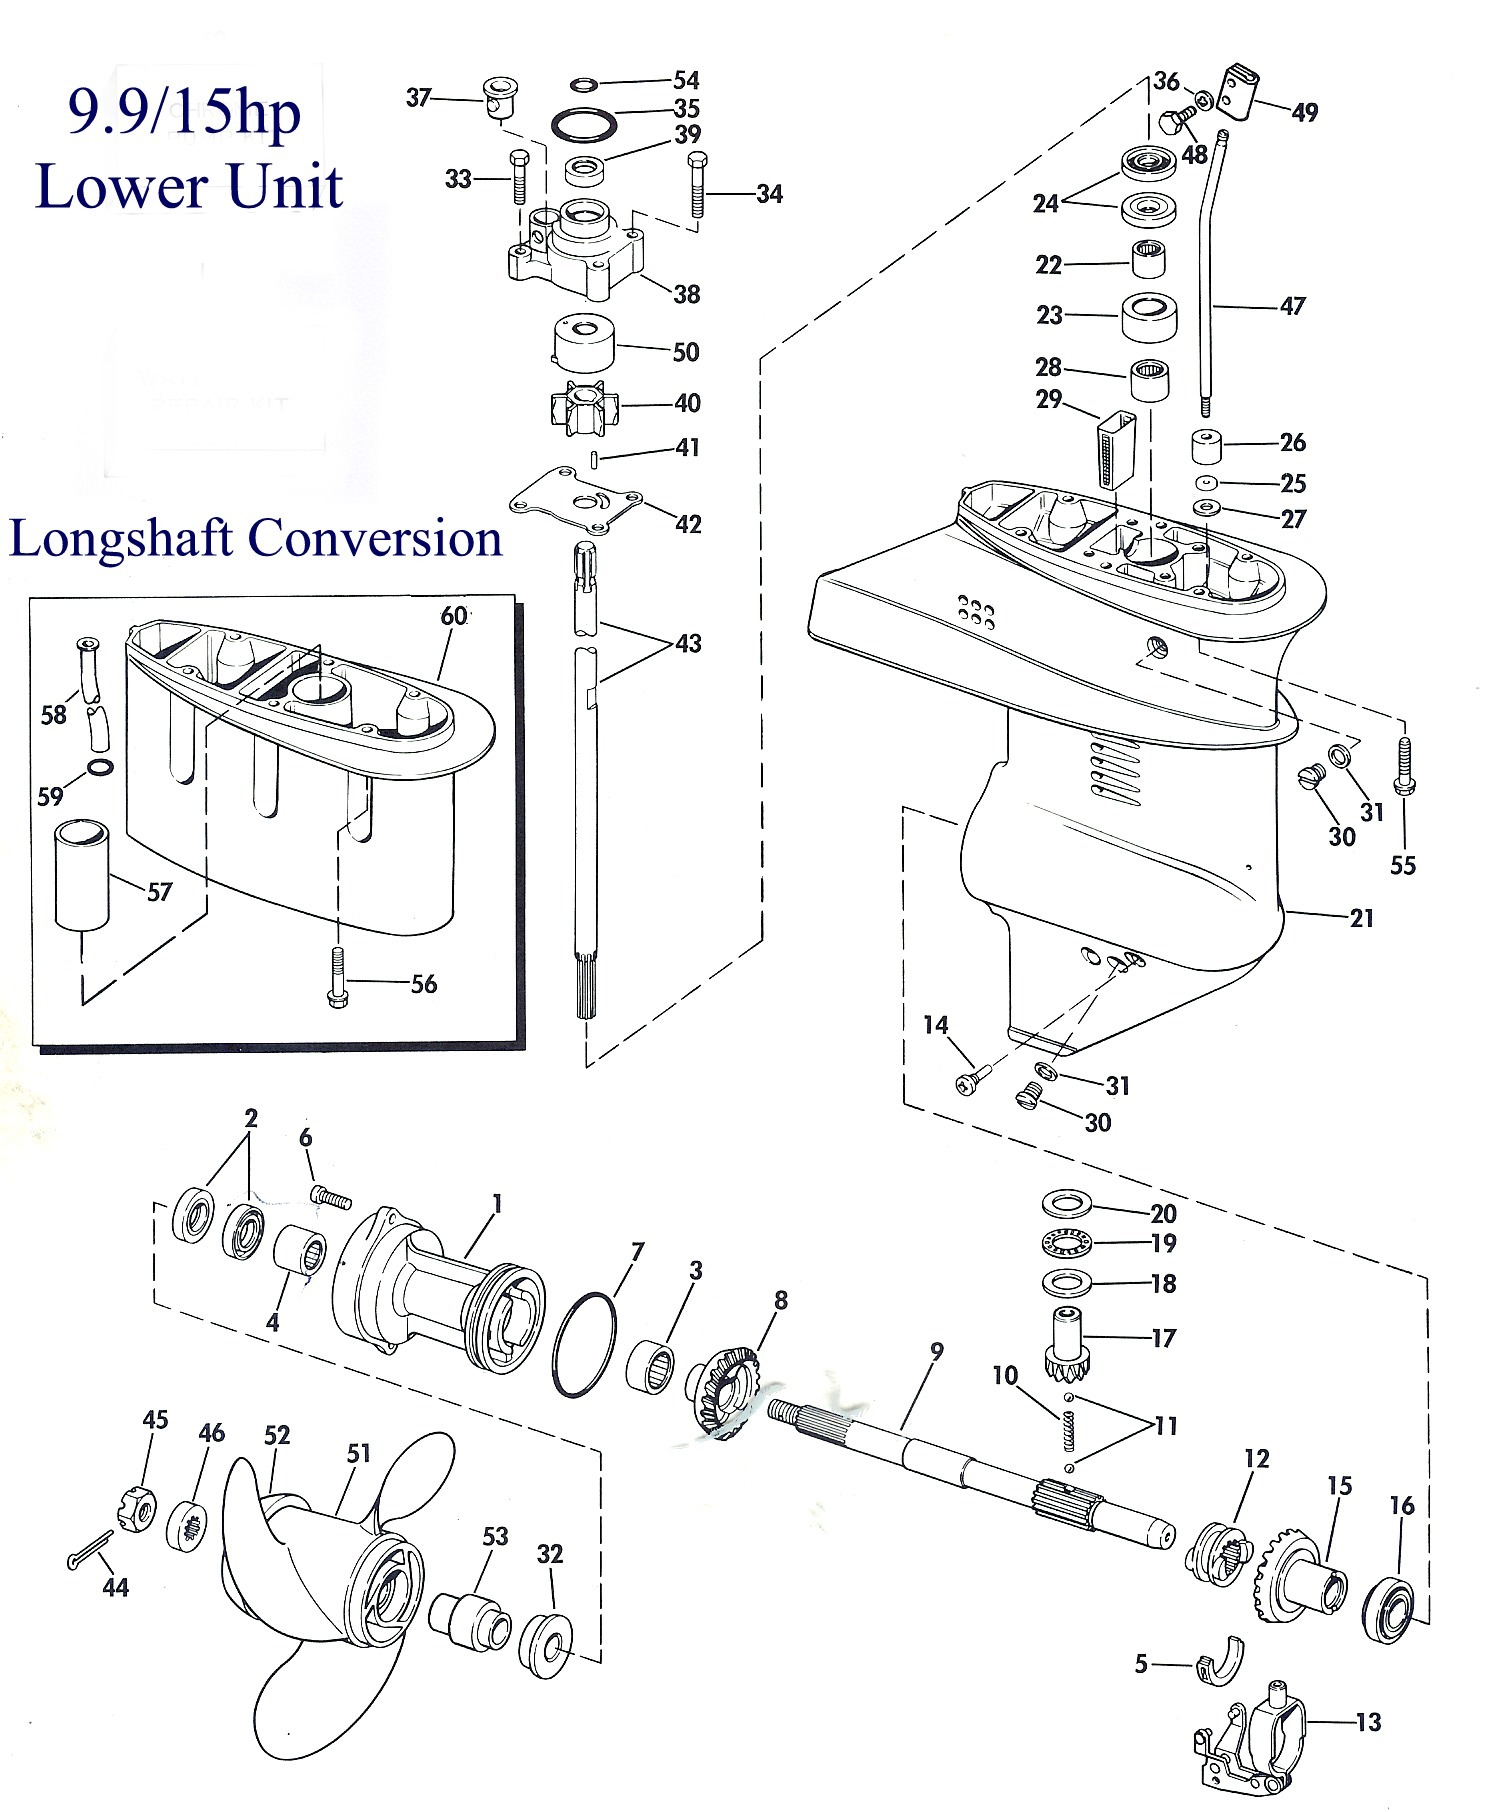 hight resolution of mercury lower unit wiring diagram wiring diagram blog honda 225 lower unit diagram honda lower unit diagram